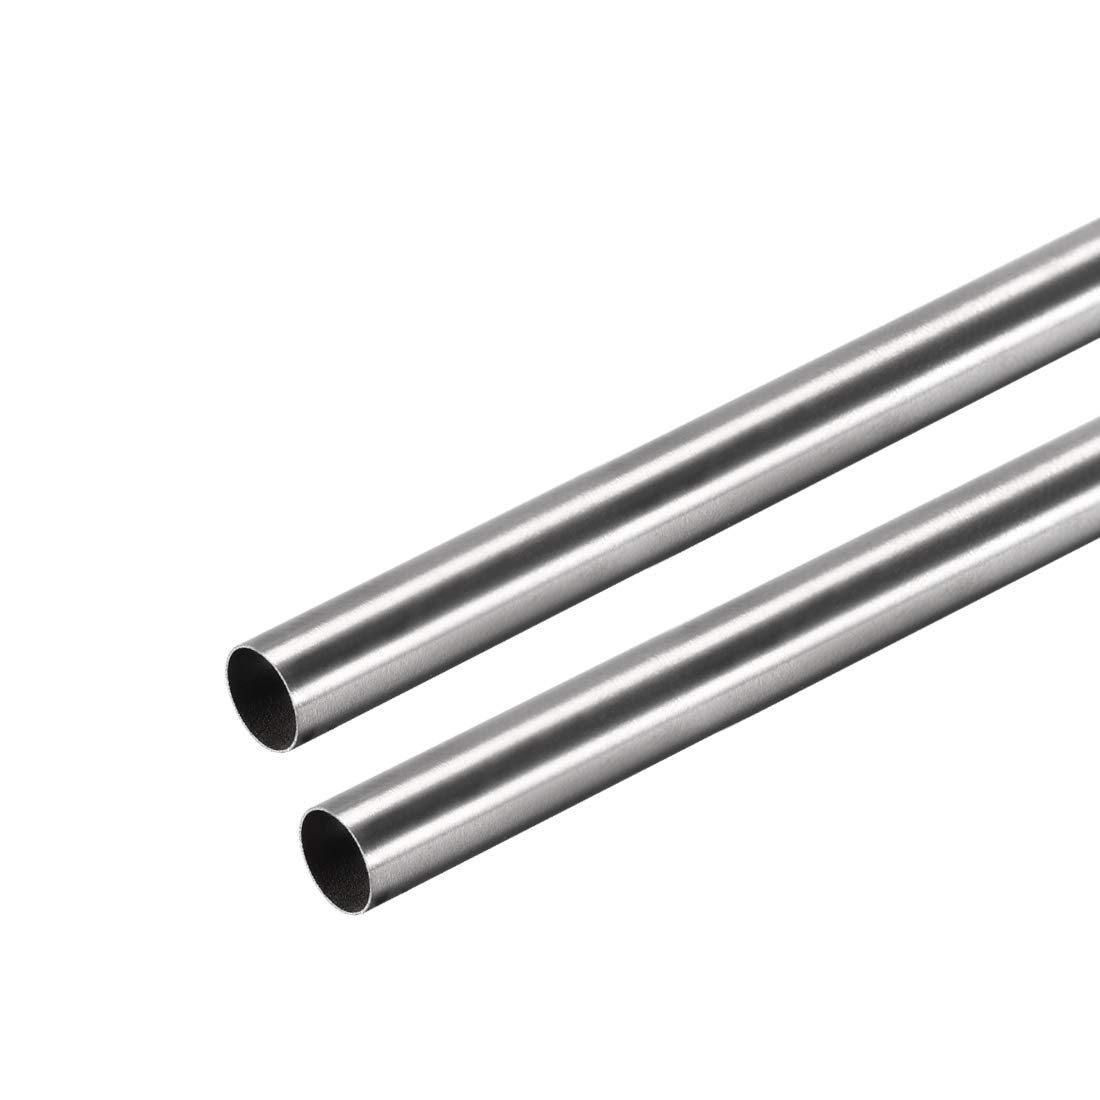 uxcell 304 Stainless Steel Round Tubing 9mm OD 1mm Wall Thickness 250mm Length Seamless Straight Pipe Tube 4 Pcs